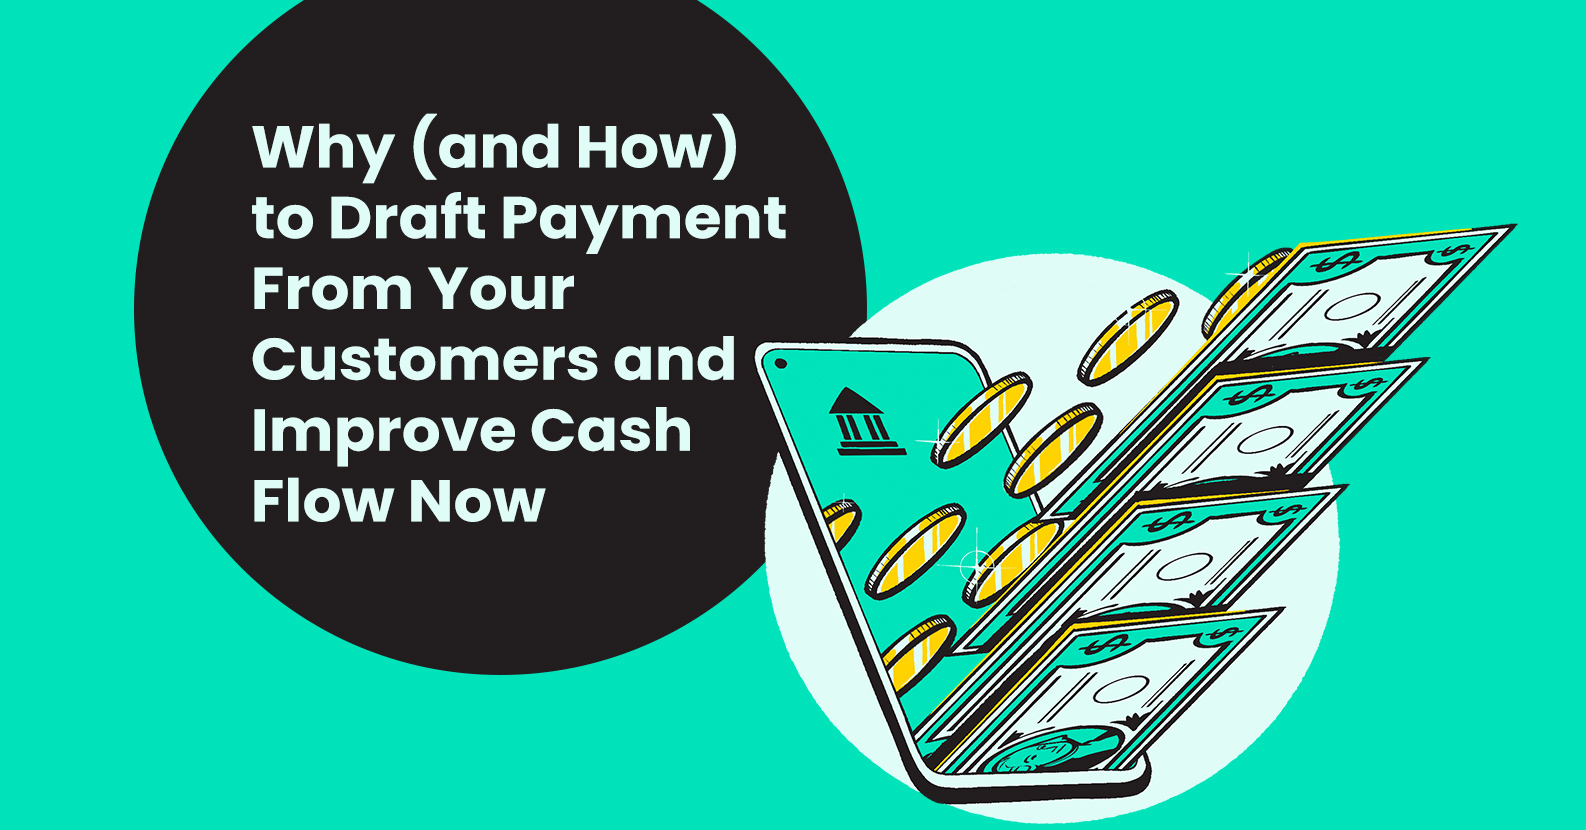 Why (and How) to Draft Payments from Your Customers and Improve Cash Flow